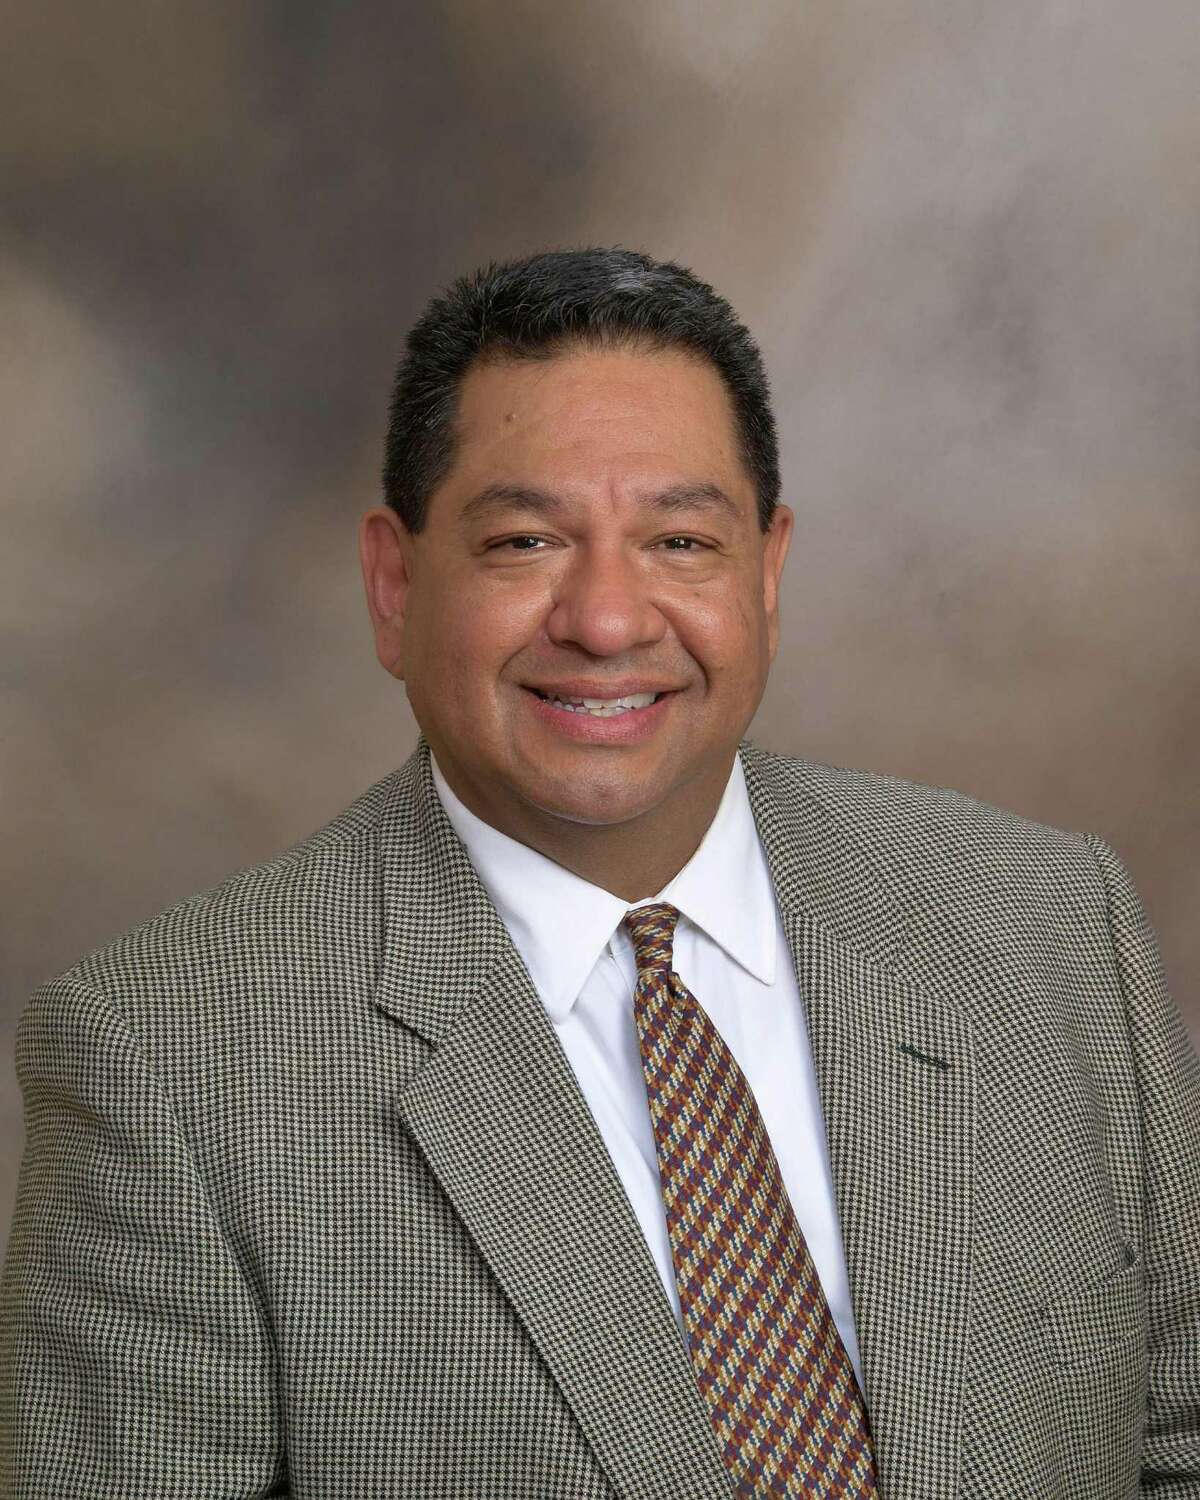 San Antonian David L. Rosa is an independent insurance agent.